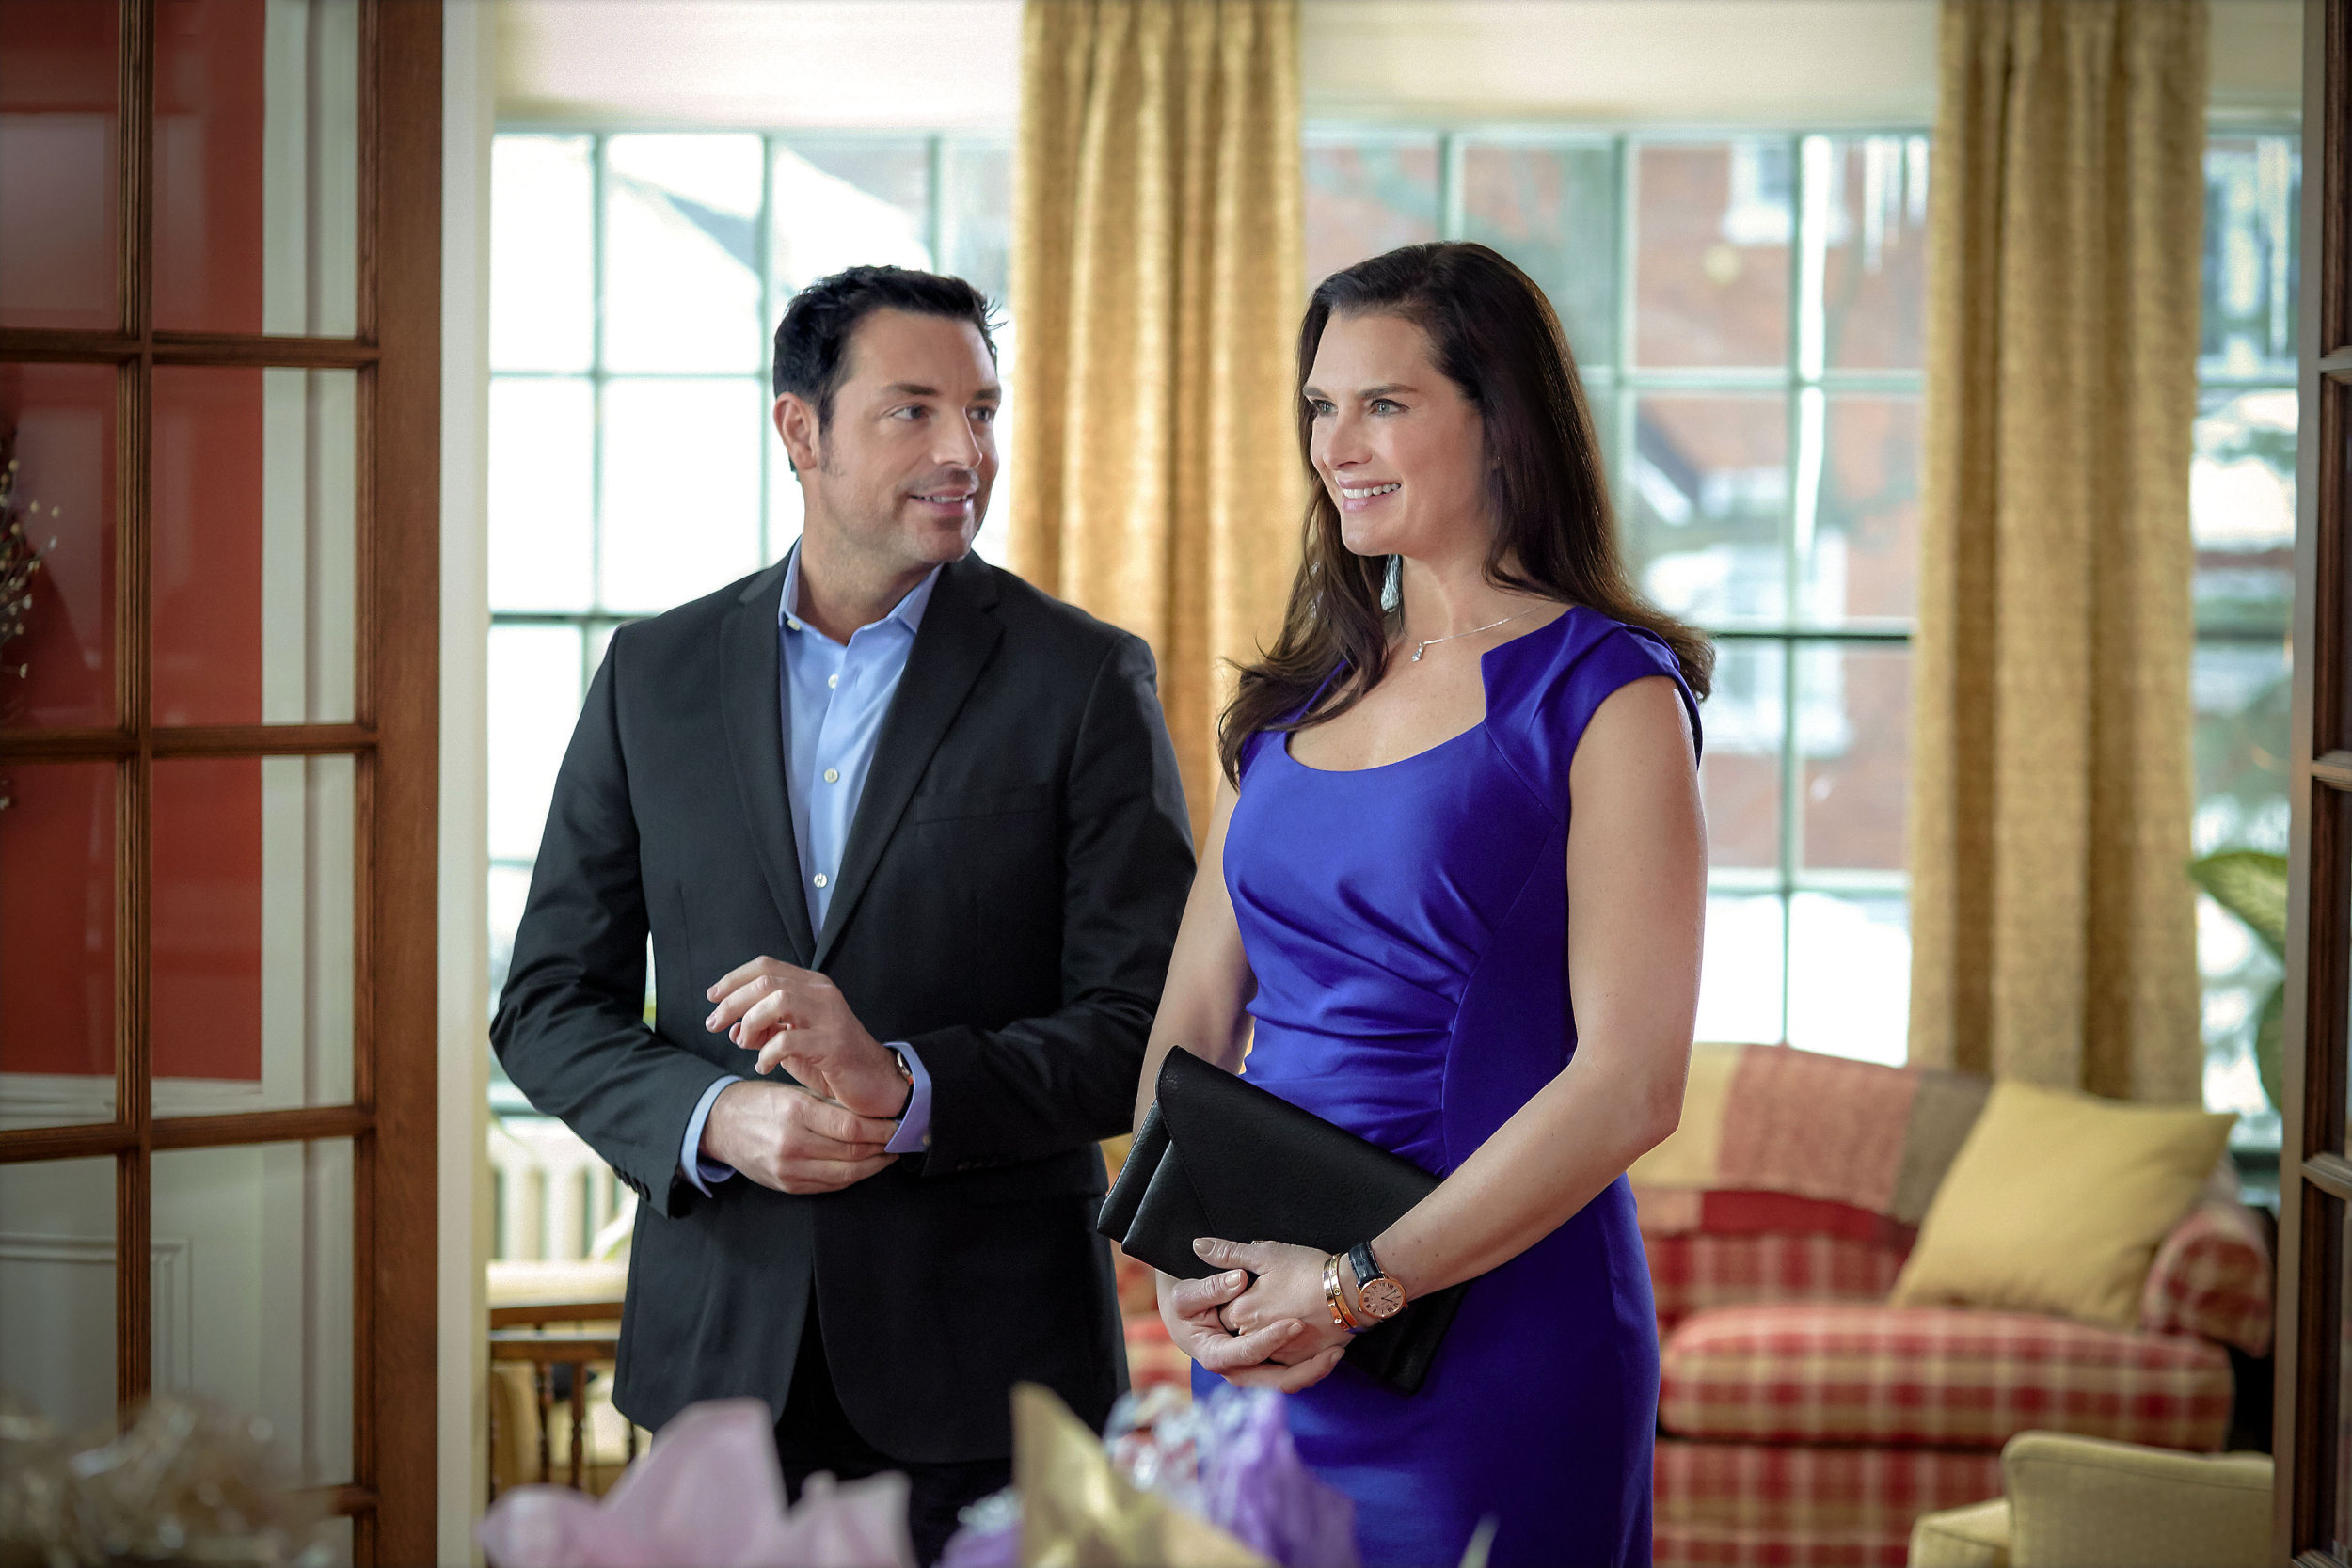 about flower shop mysteries dearly depotted hallmark movies and mysteries. Black Bedroom Furniture Sets. Home Design Ideas